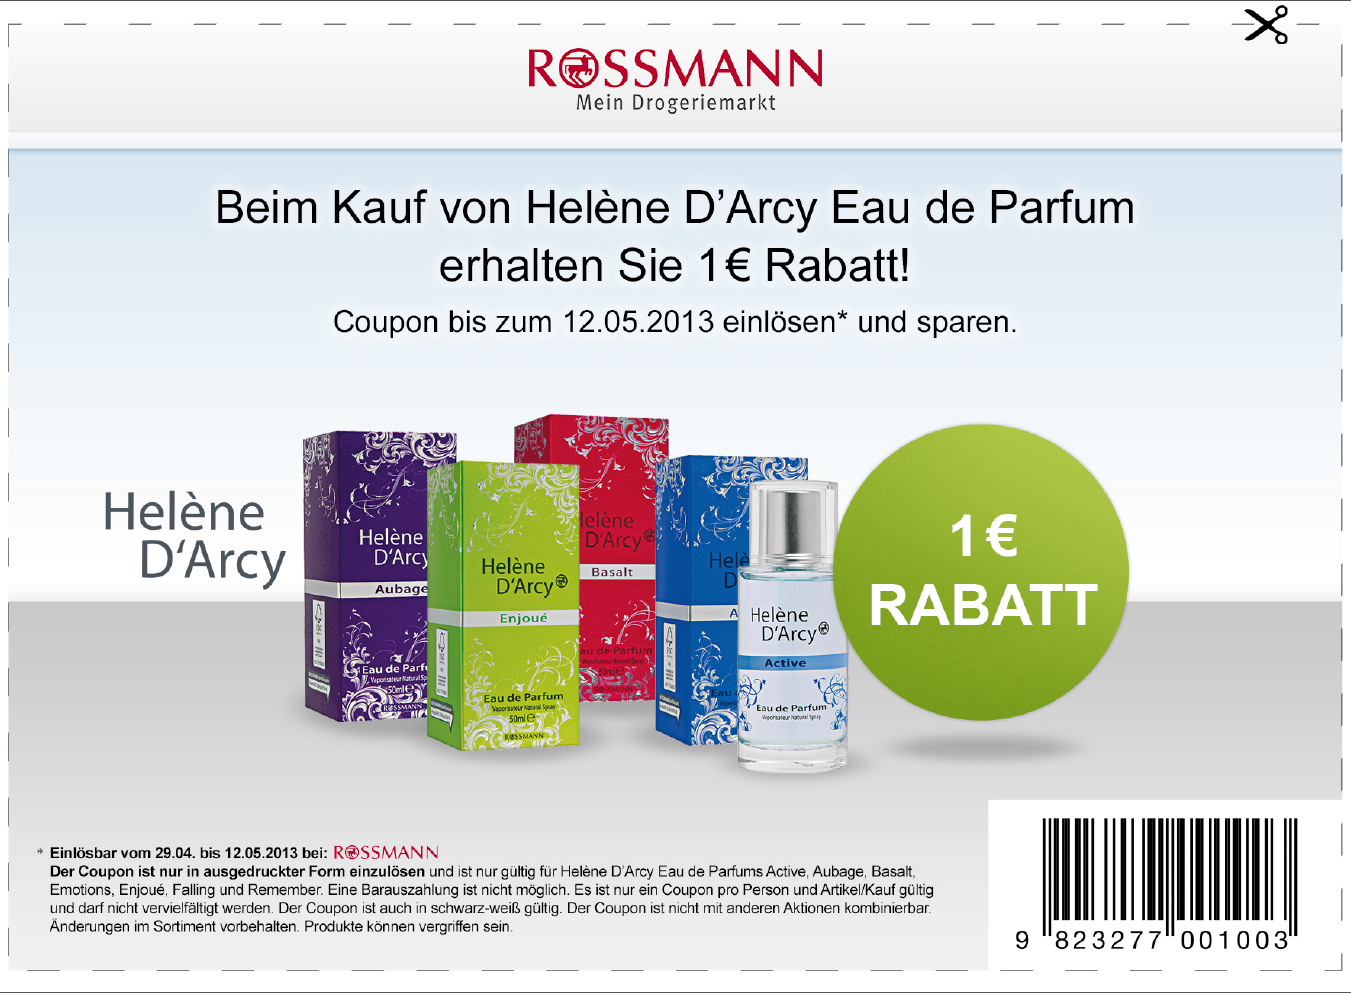 10 euro gutschein rossmann. Black Bedroom Furniture Sets. Home Design Ideas